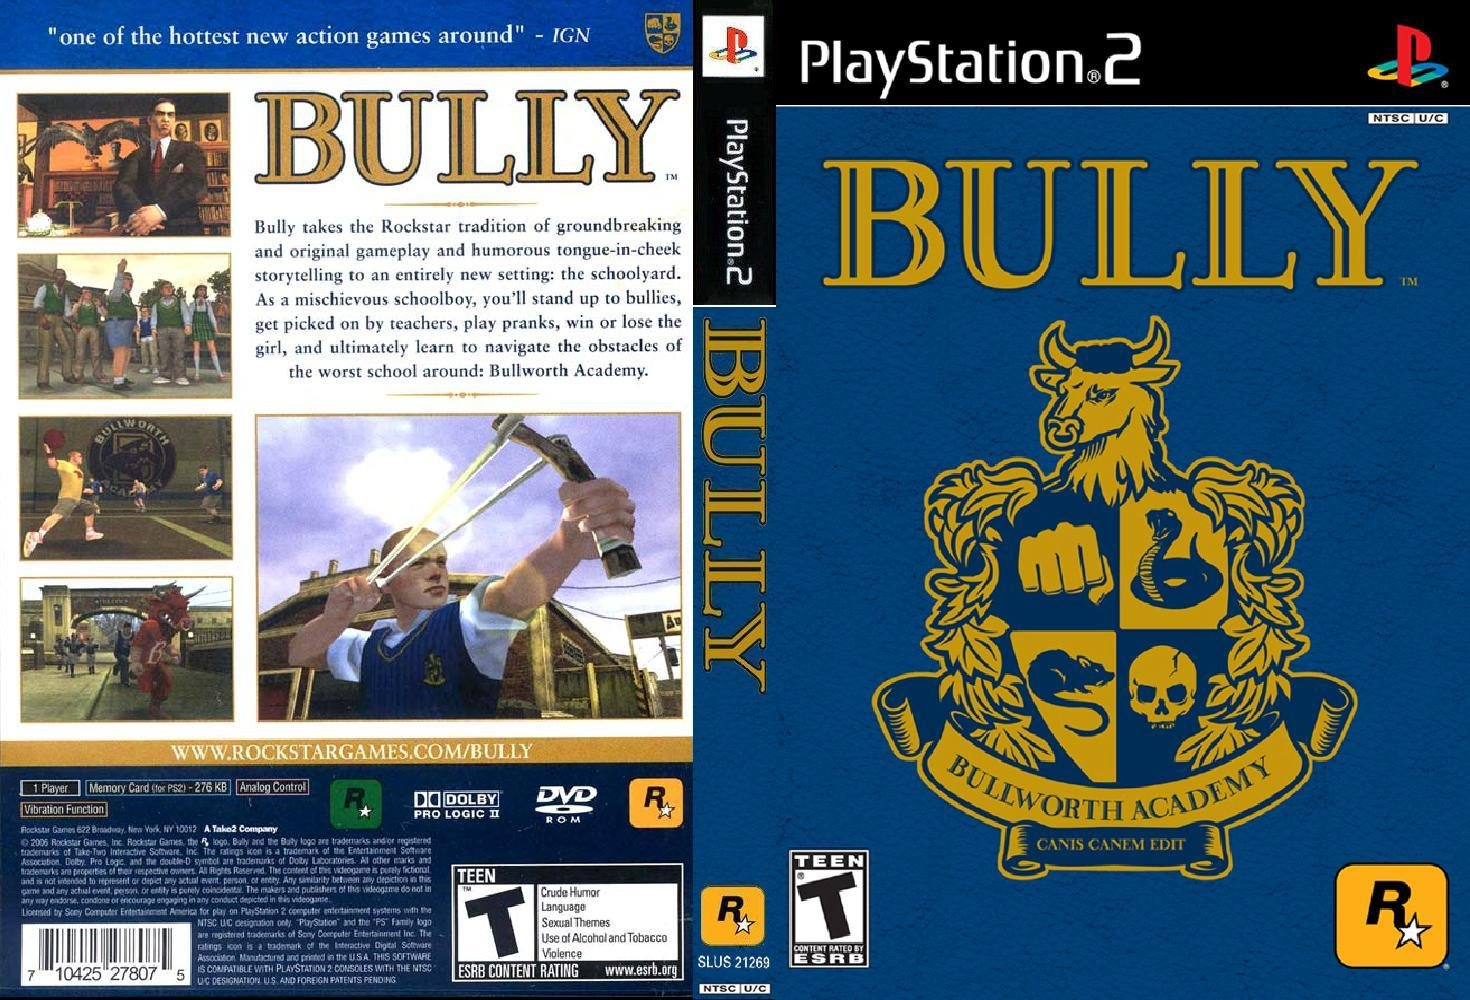 Download Game Bully Pcsx2 Highly Compressed - cultured0wnload's blog